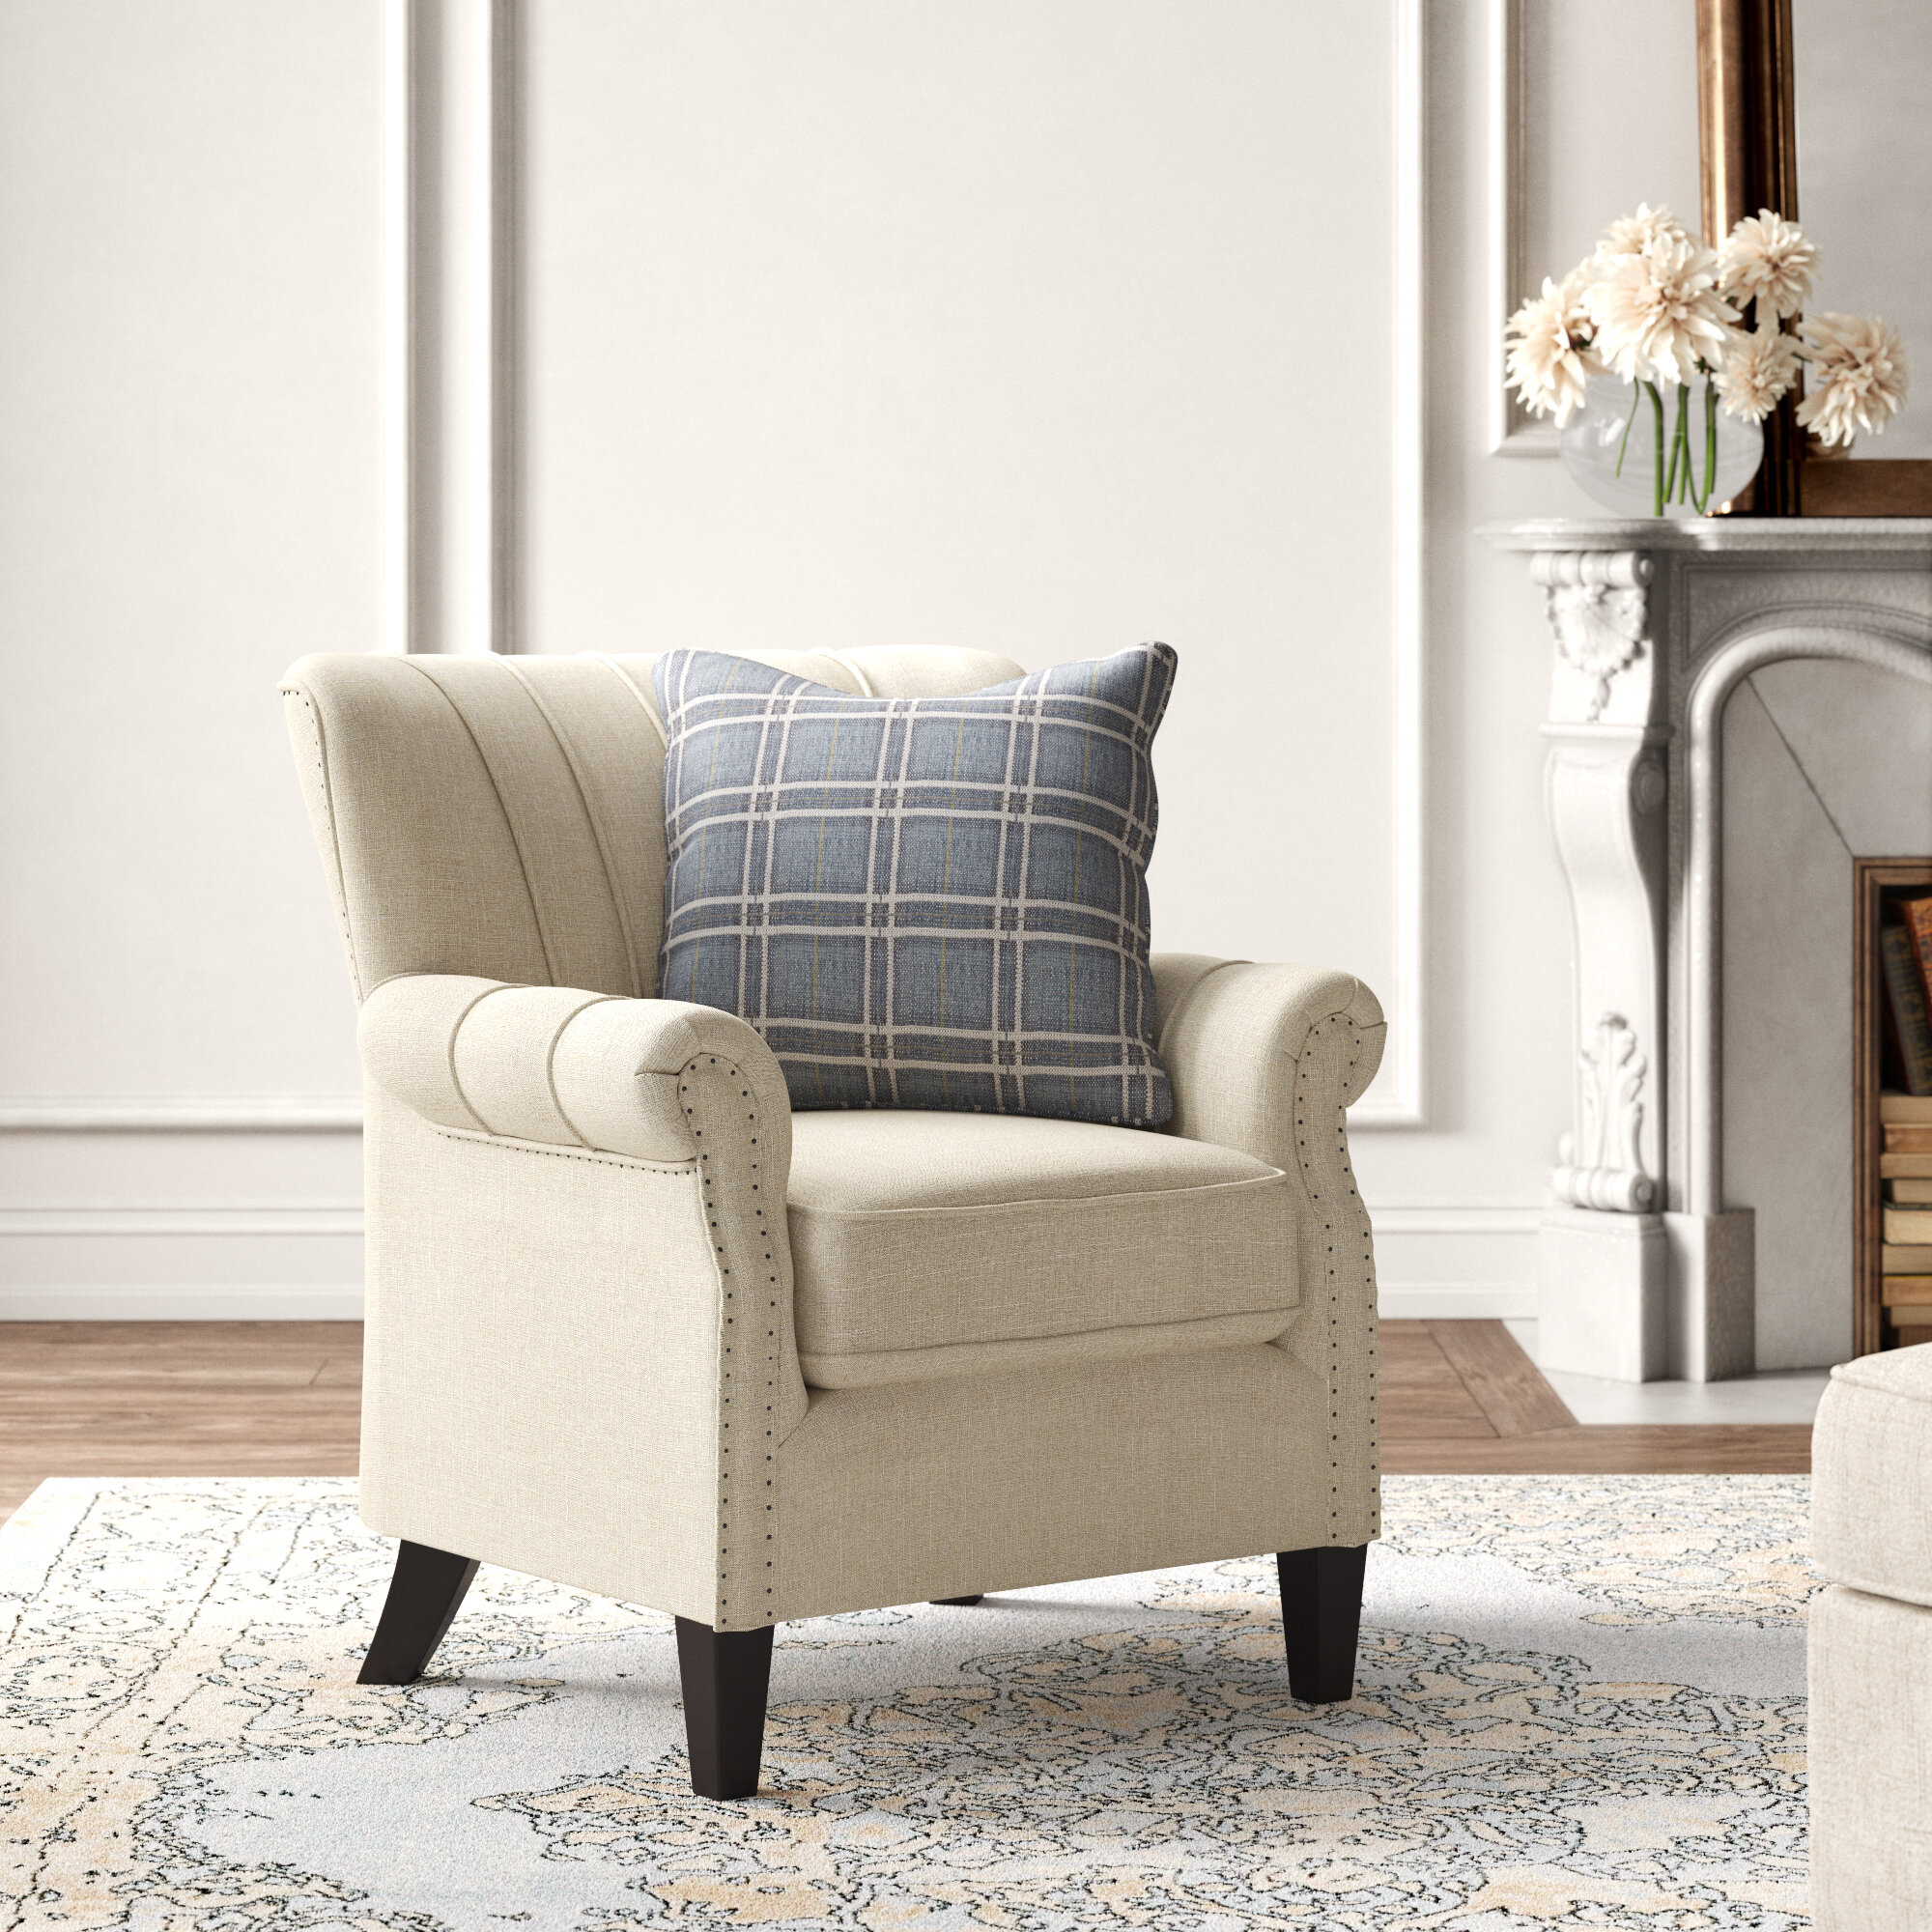 Armchairs | Wayfair Intended For Wainfleet Armchairs (Photo 13 of 15)